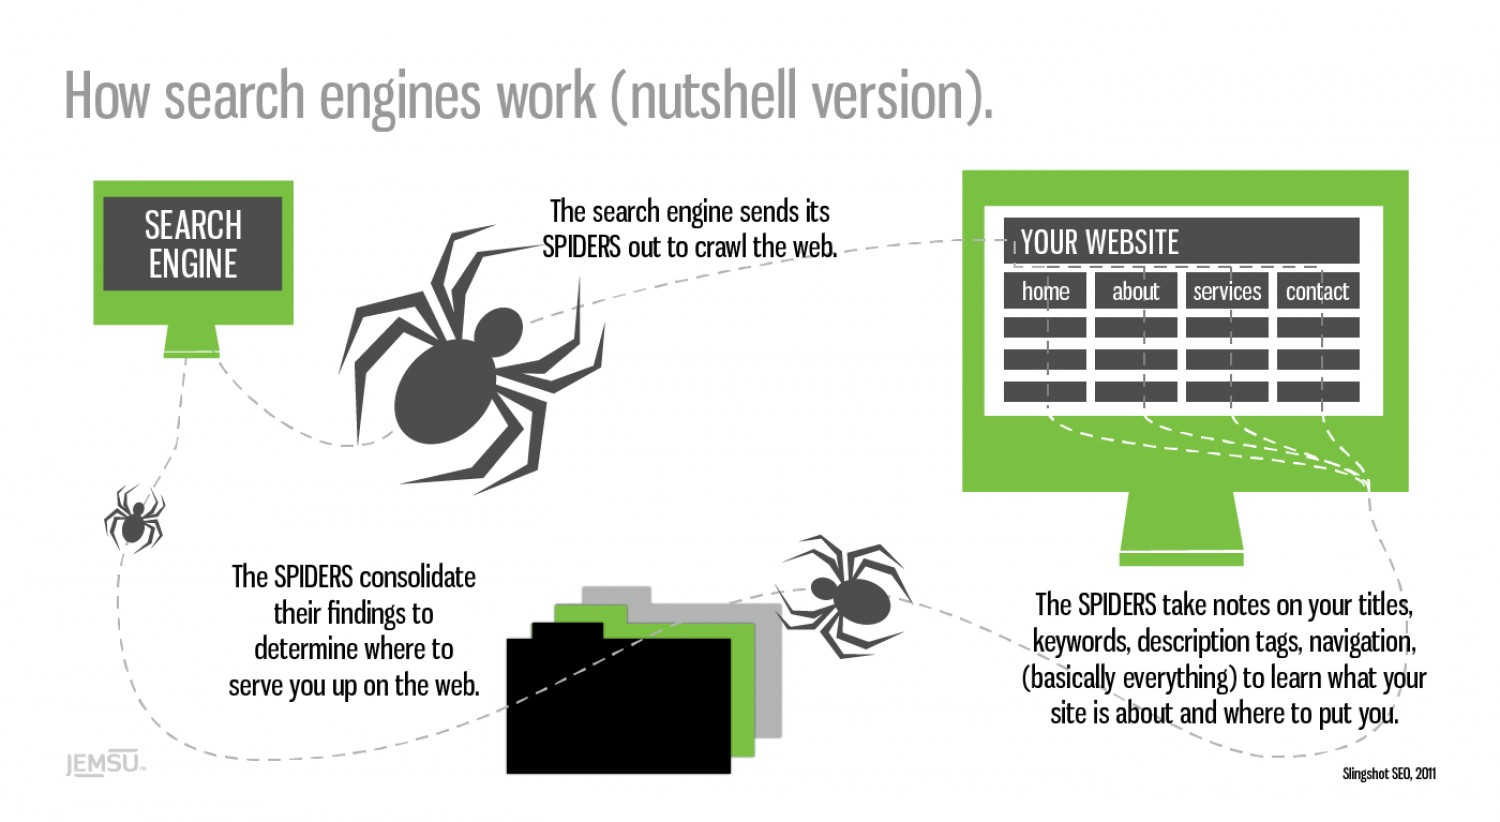 how search engines work (nutshell version)